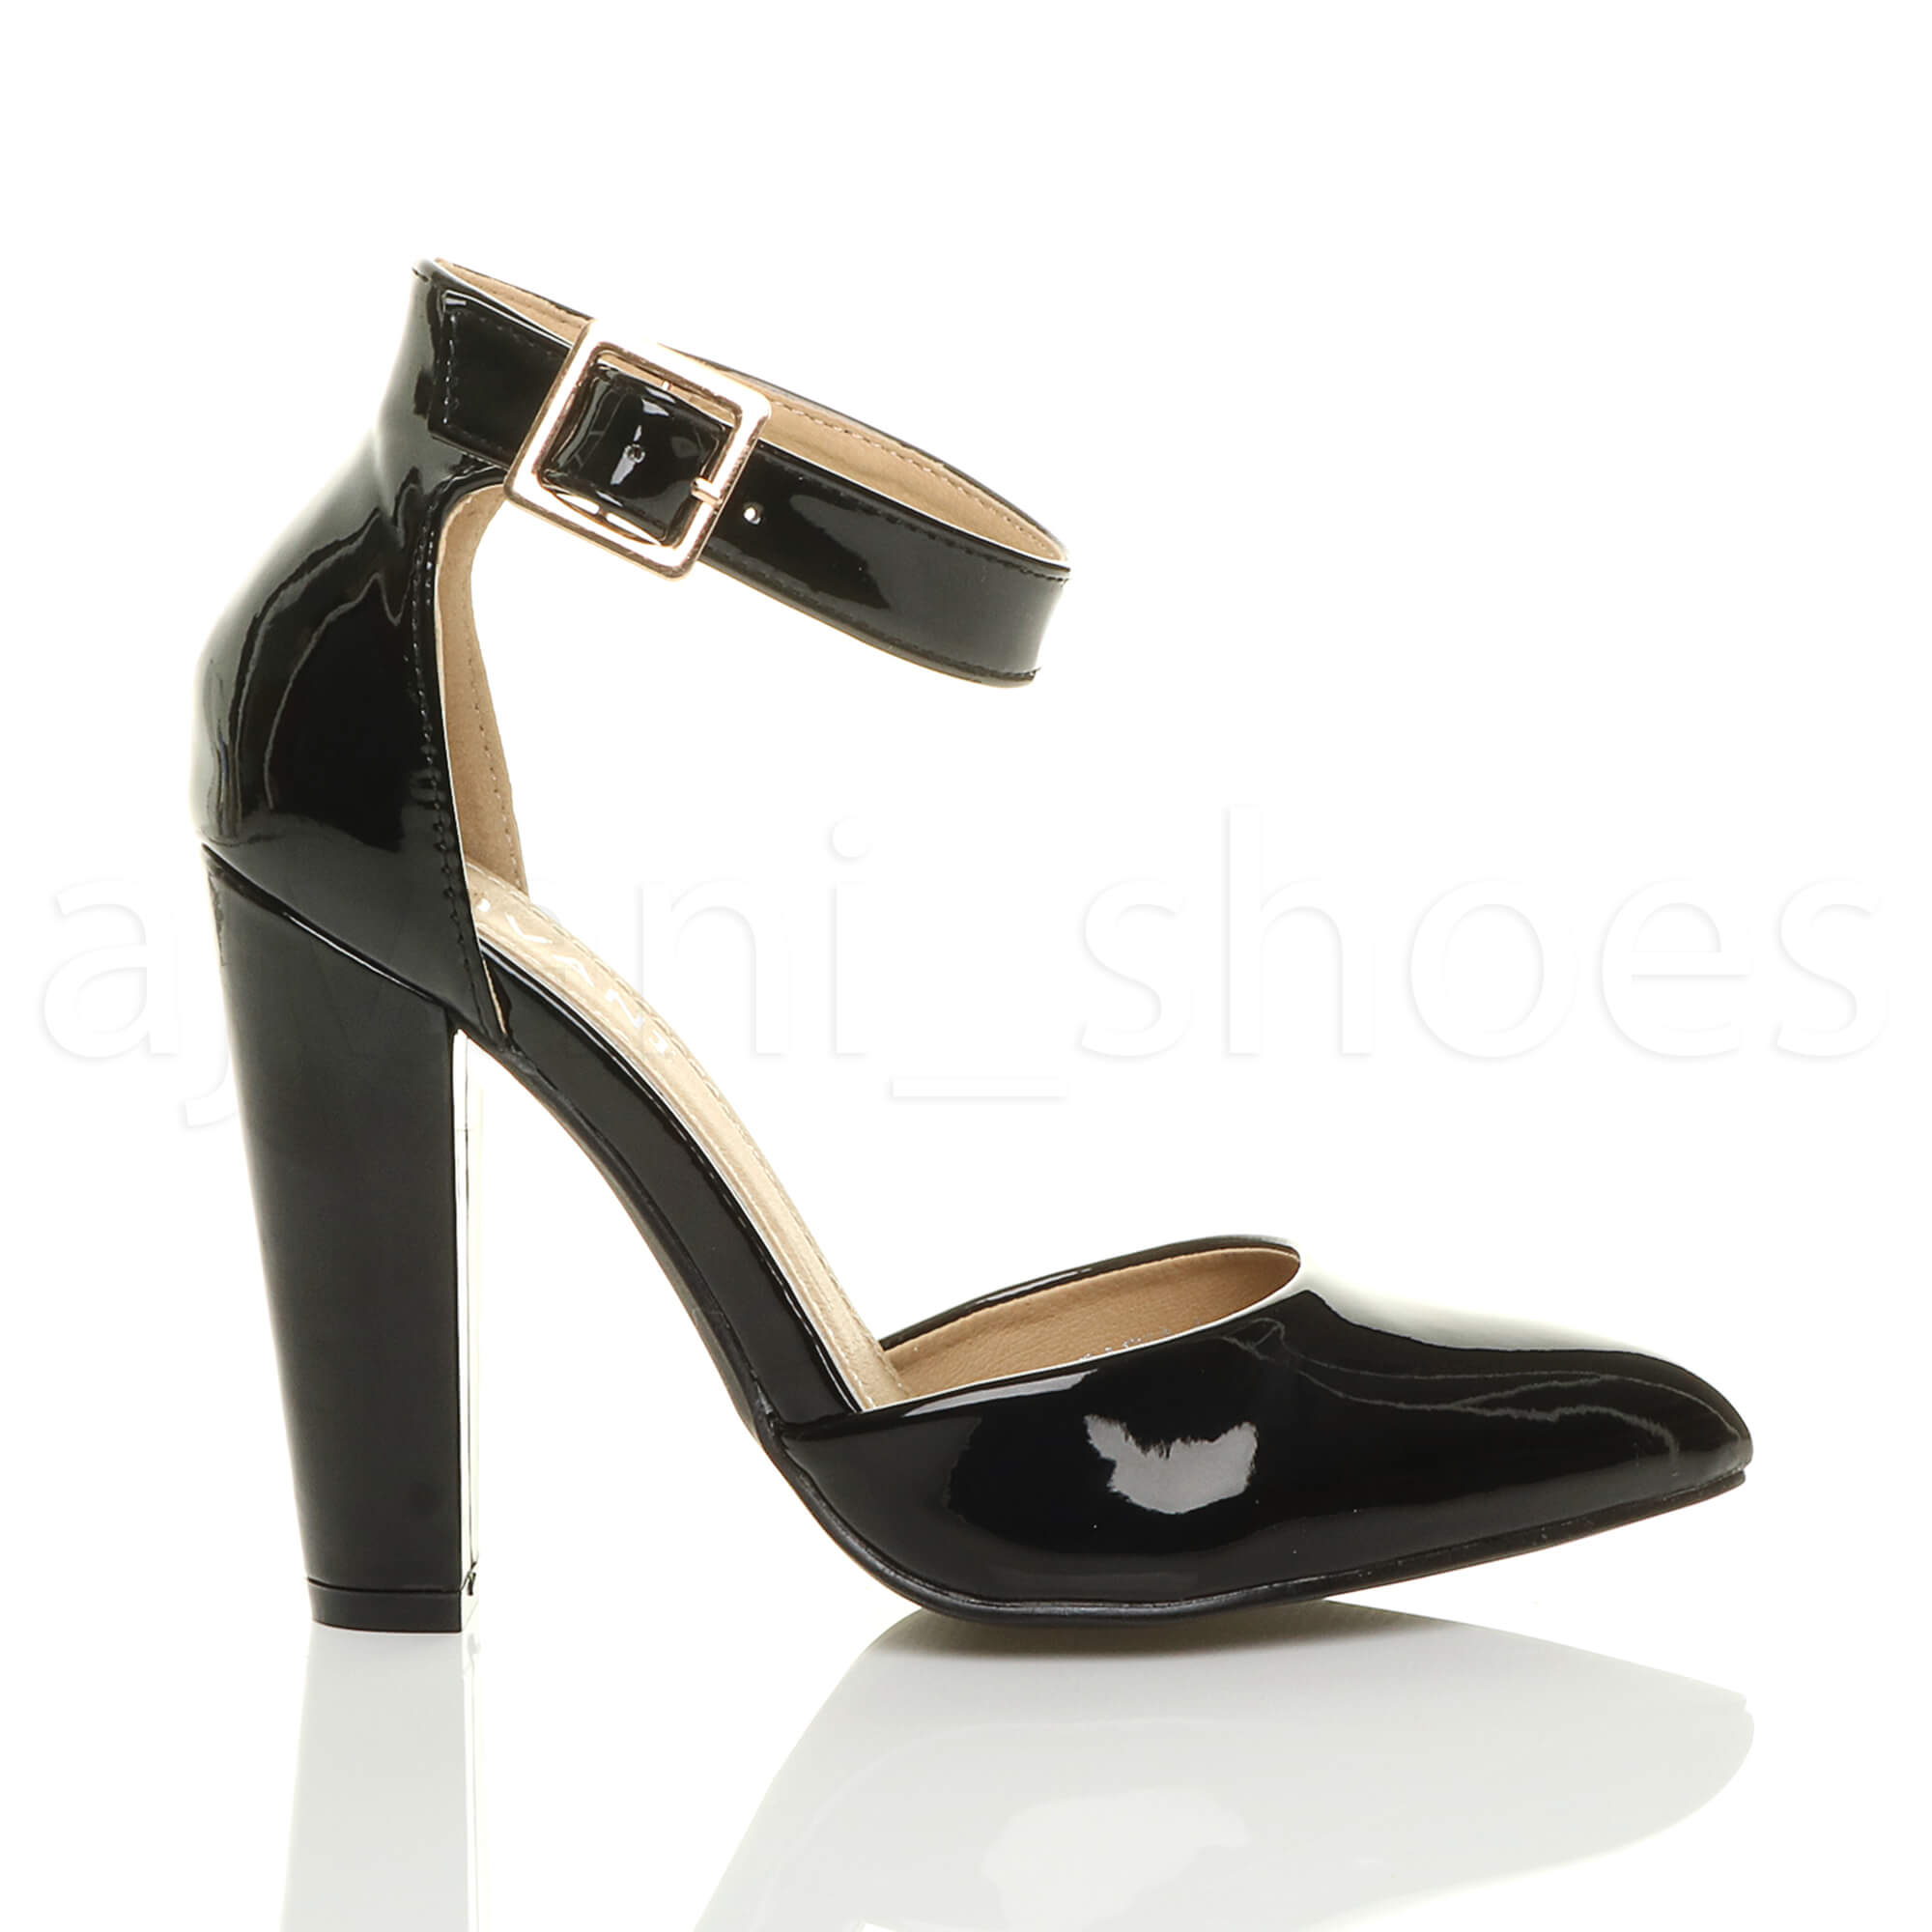 WOMENS-LADIES-HIGH-BLOCK-HEEL-ANKLE-STRAP-BUCKLE-POINTED-COURT-SHOES-SIZE thumbnail 10